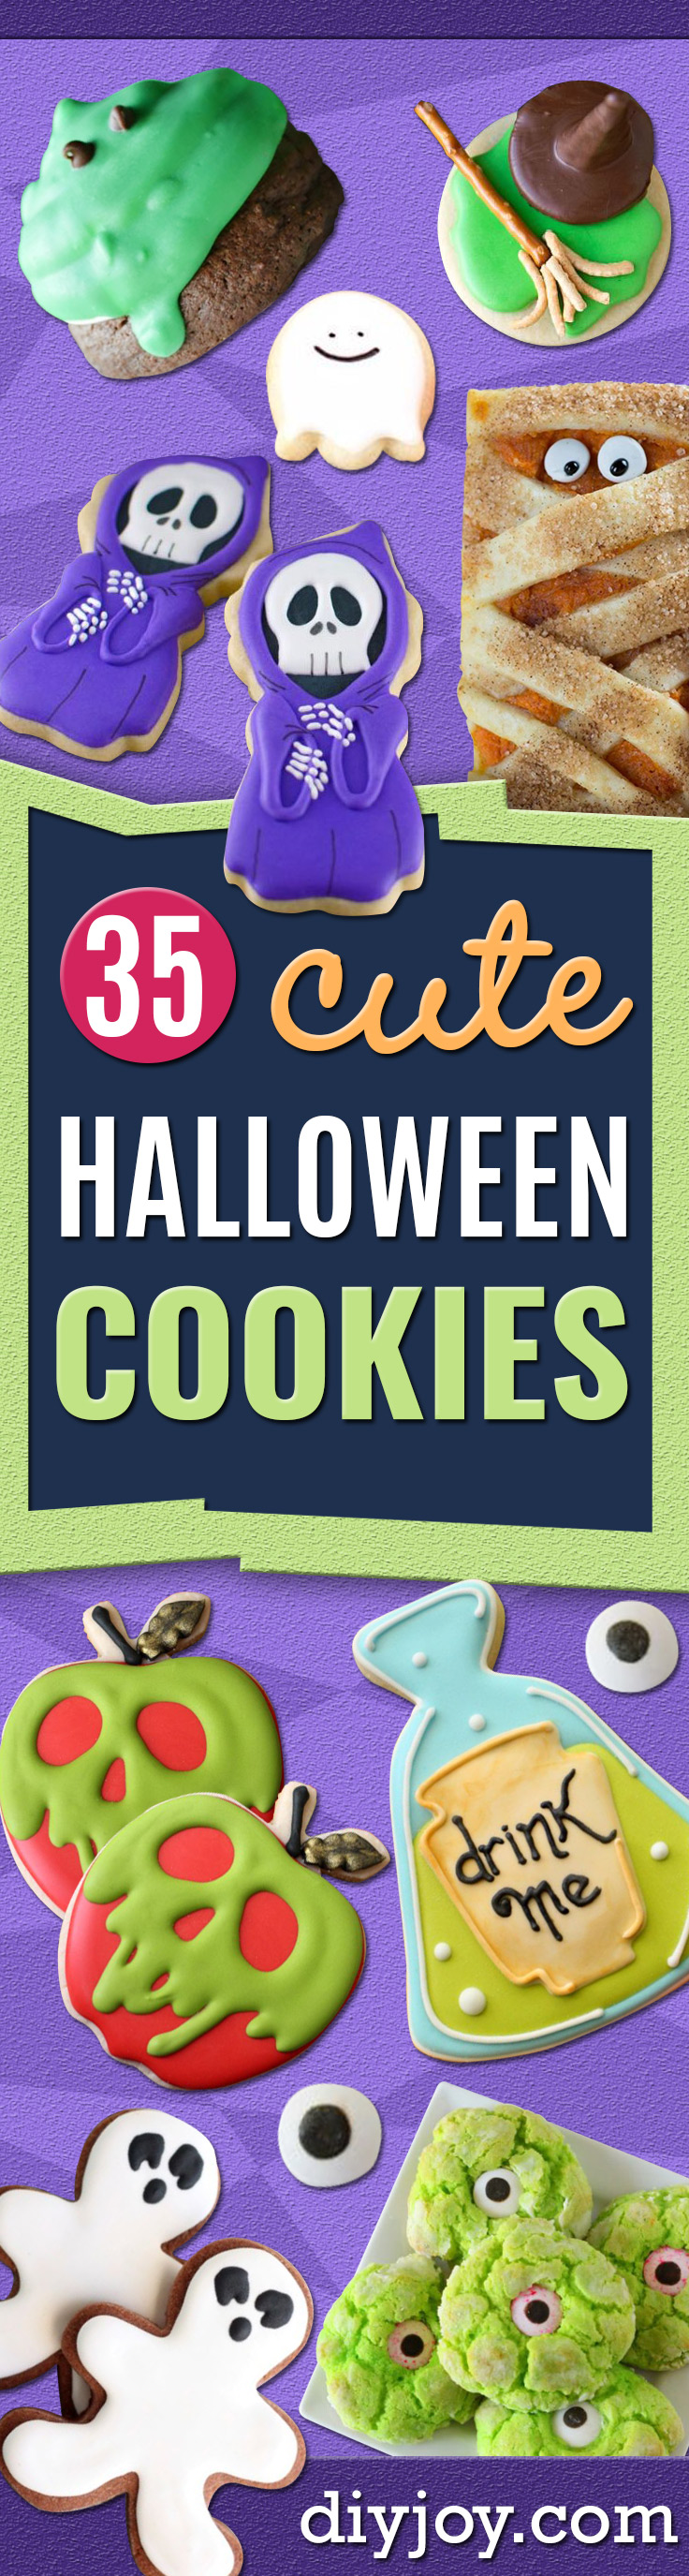 Cute Halloween Cookies - Easy Recipes and Cookie Tutorials for Making Quick Halloween Treats - Spooky DIY Decorated Ghosts, Pumpkins, Bats, No Bake, Spiders and Spiderwebs, Tombstones and Healthy Options, Kids and Teens Cookies for School http://diyjoy.com/halloween-cookies-ideas